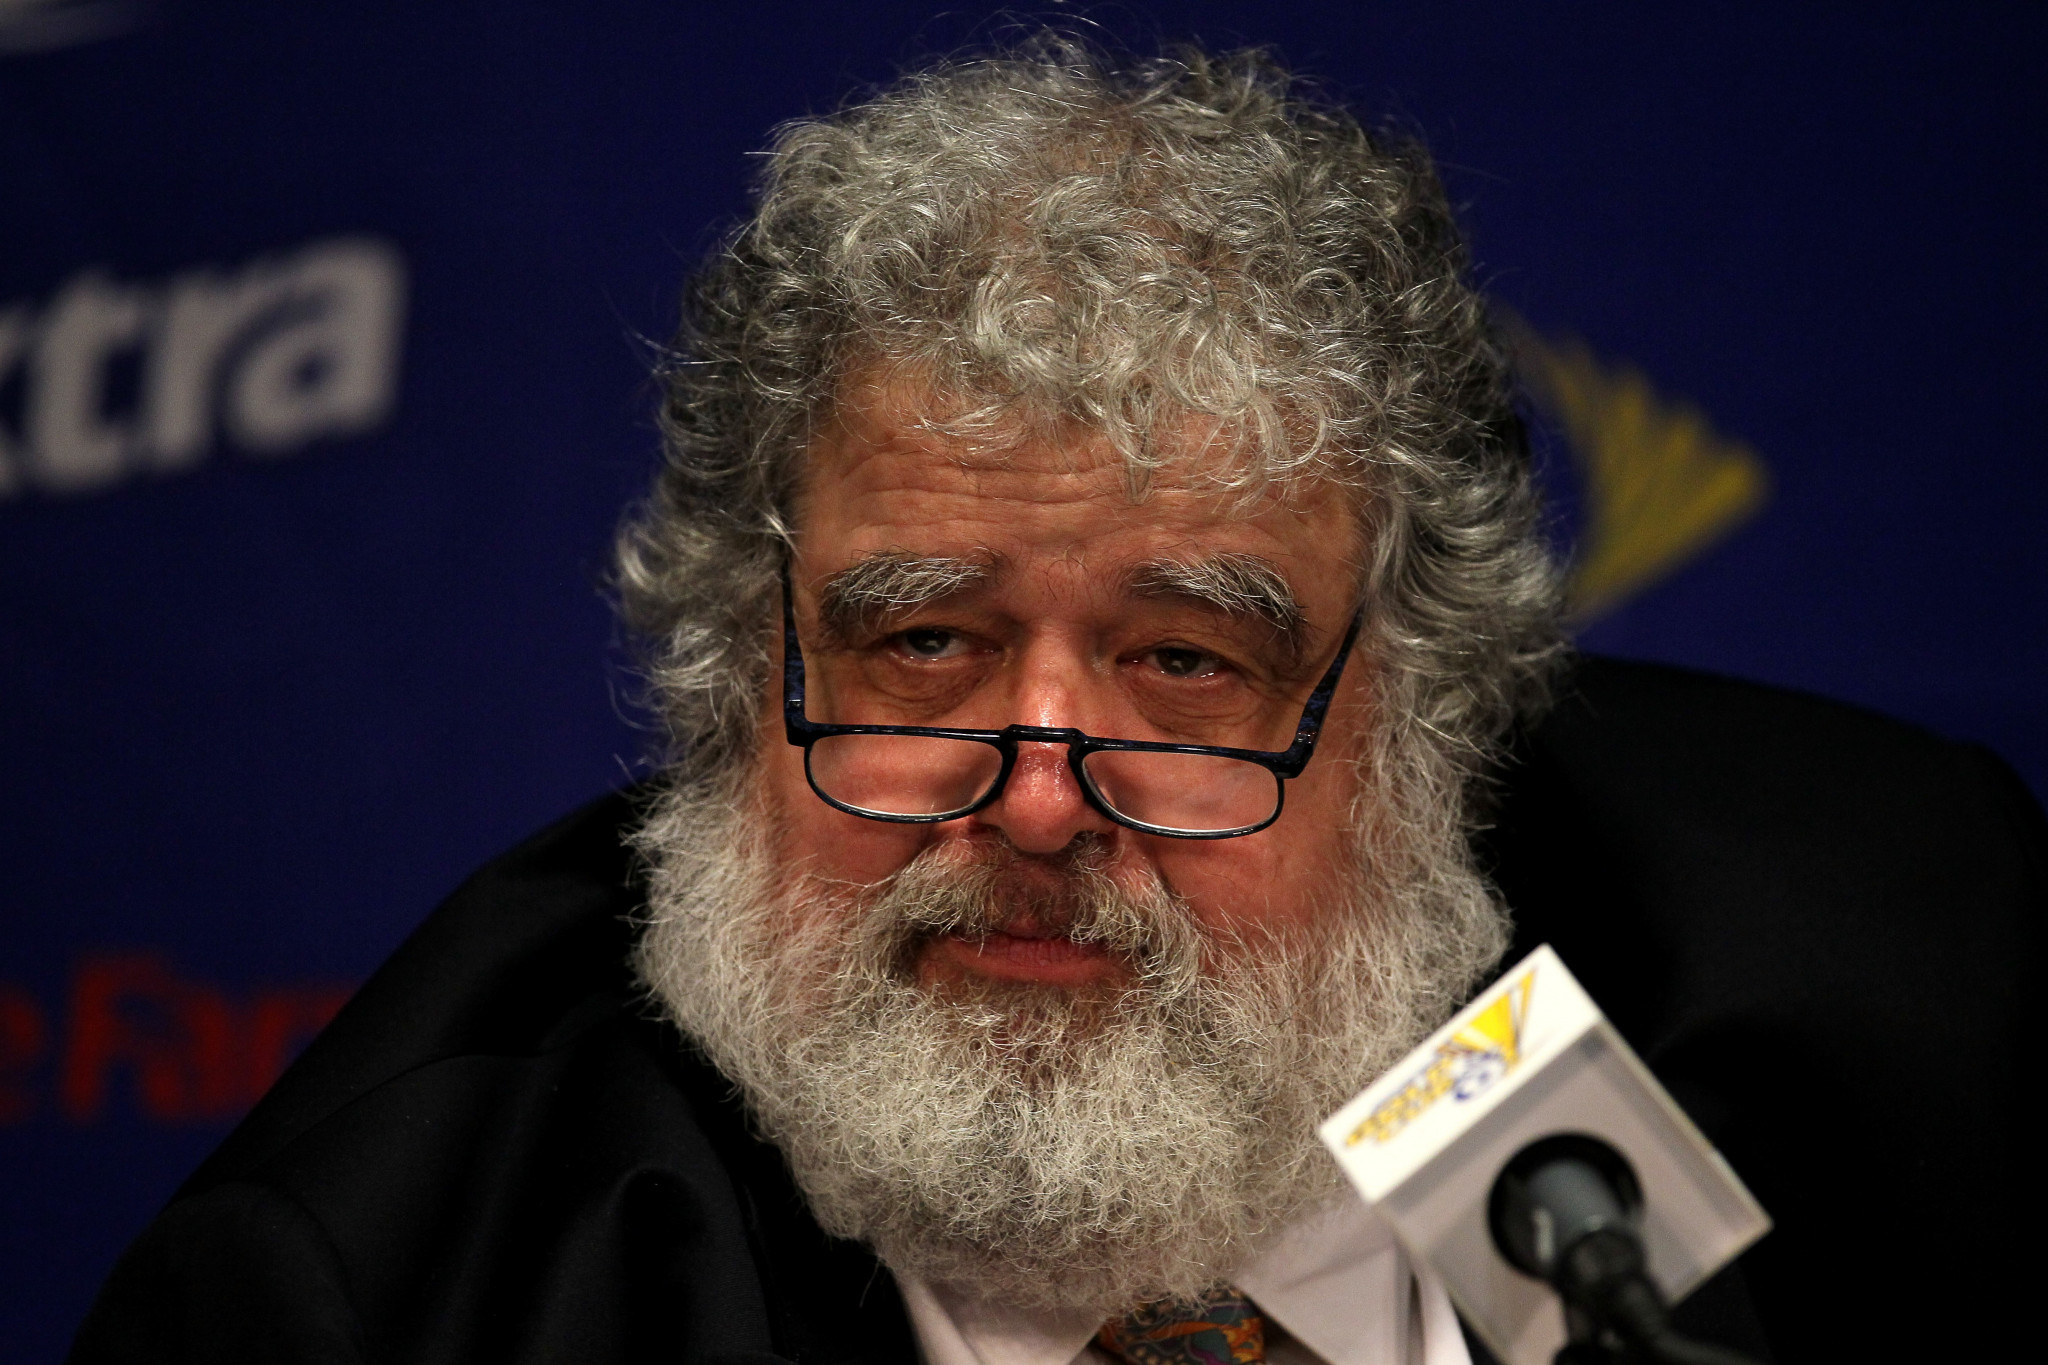 Chuck Blazer, who has now passed away, was a central figure in the corruption scandals ©Getty Images